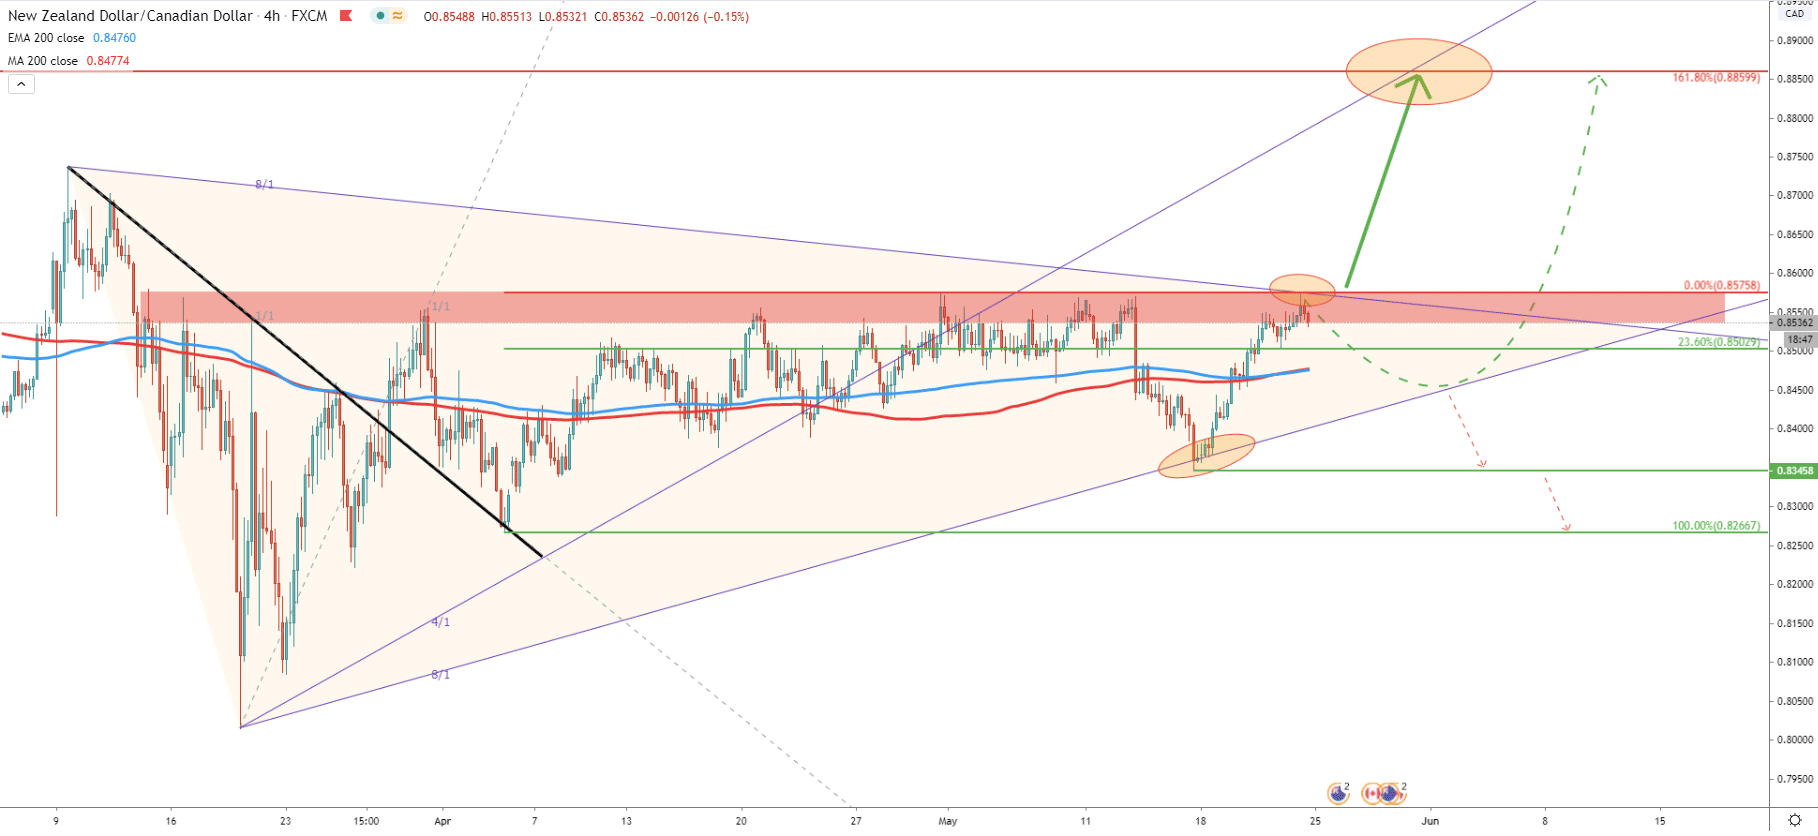 NZD/CAD 4-Hour Technical Analysis 22 May 2020